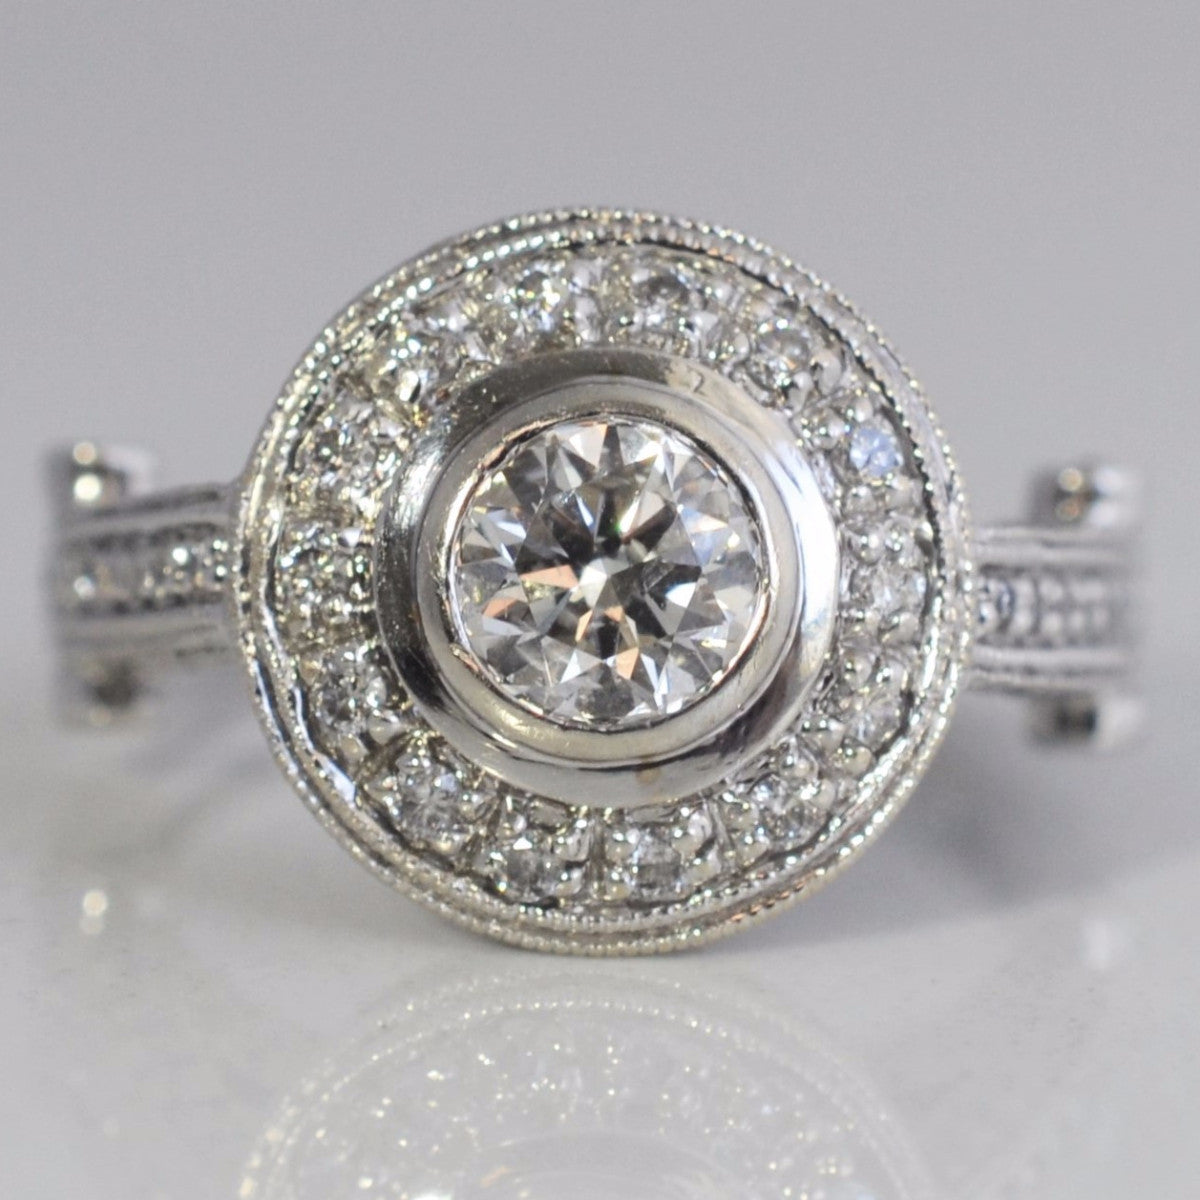 Bezel Set Milgrain Detailed Engagement Ring | 1.10 ctw, SZ 6.25 |